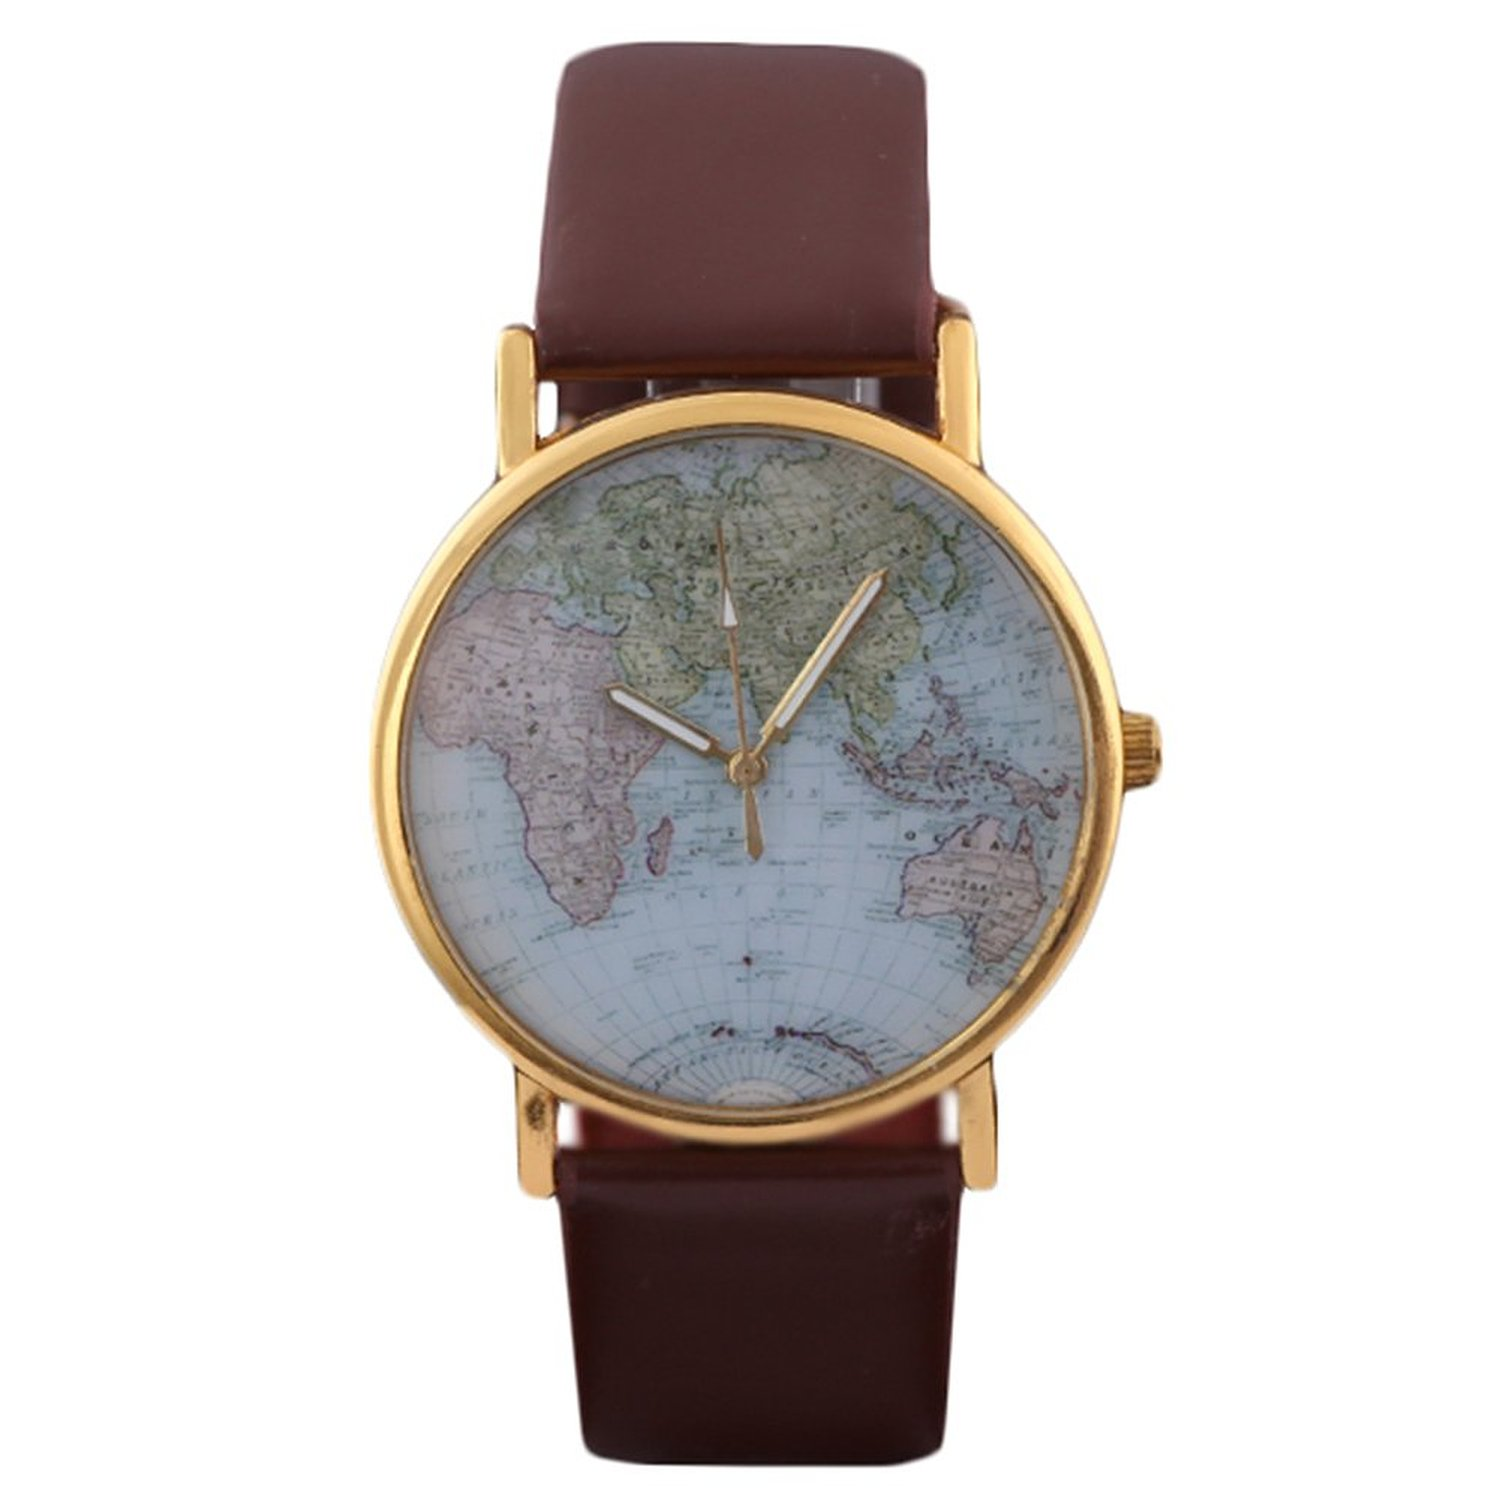 Amazon.com: HACBIWA Global Fashion Unisex Men Women Lady Girls World Map Brown Leather Alloy Analog Quartz watches: Watches